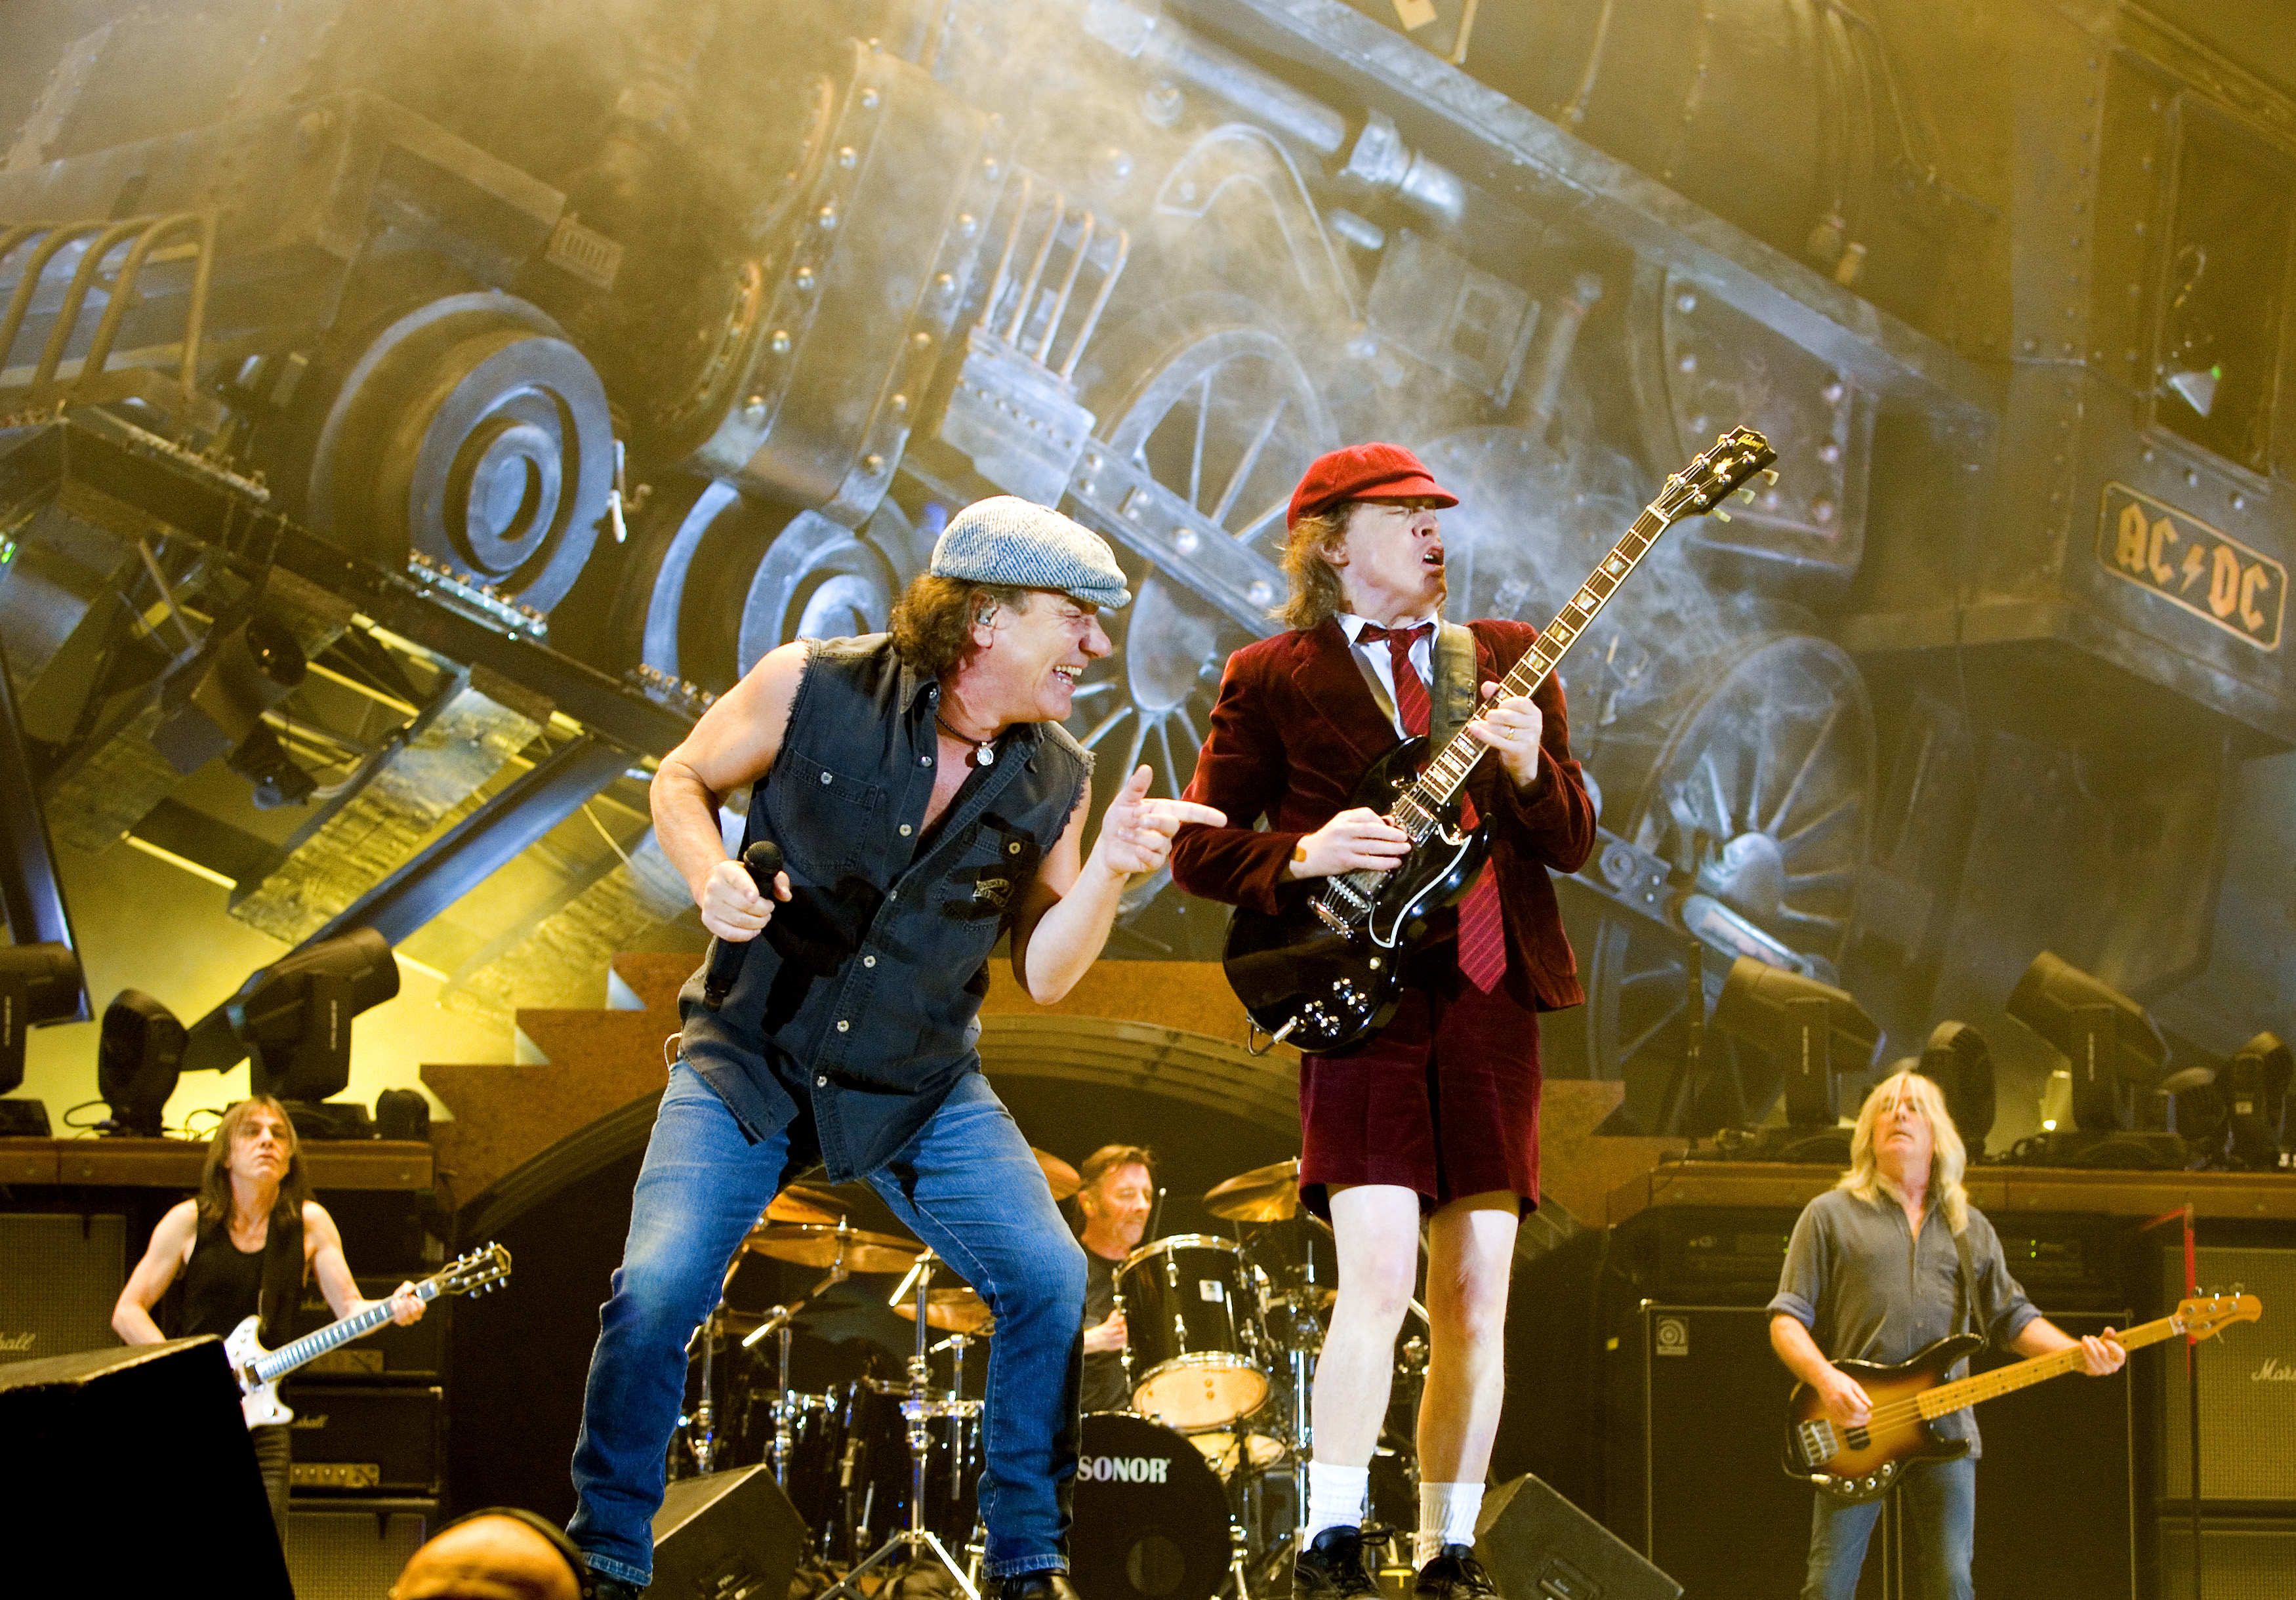 Rock band AC/DC lead guitarist Angus Young (R) and vocalist Brian Johnson perform during a concert at the Telenor Arena in Fornebu, near Oslo February 18, 2009.